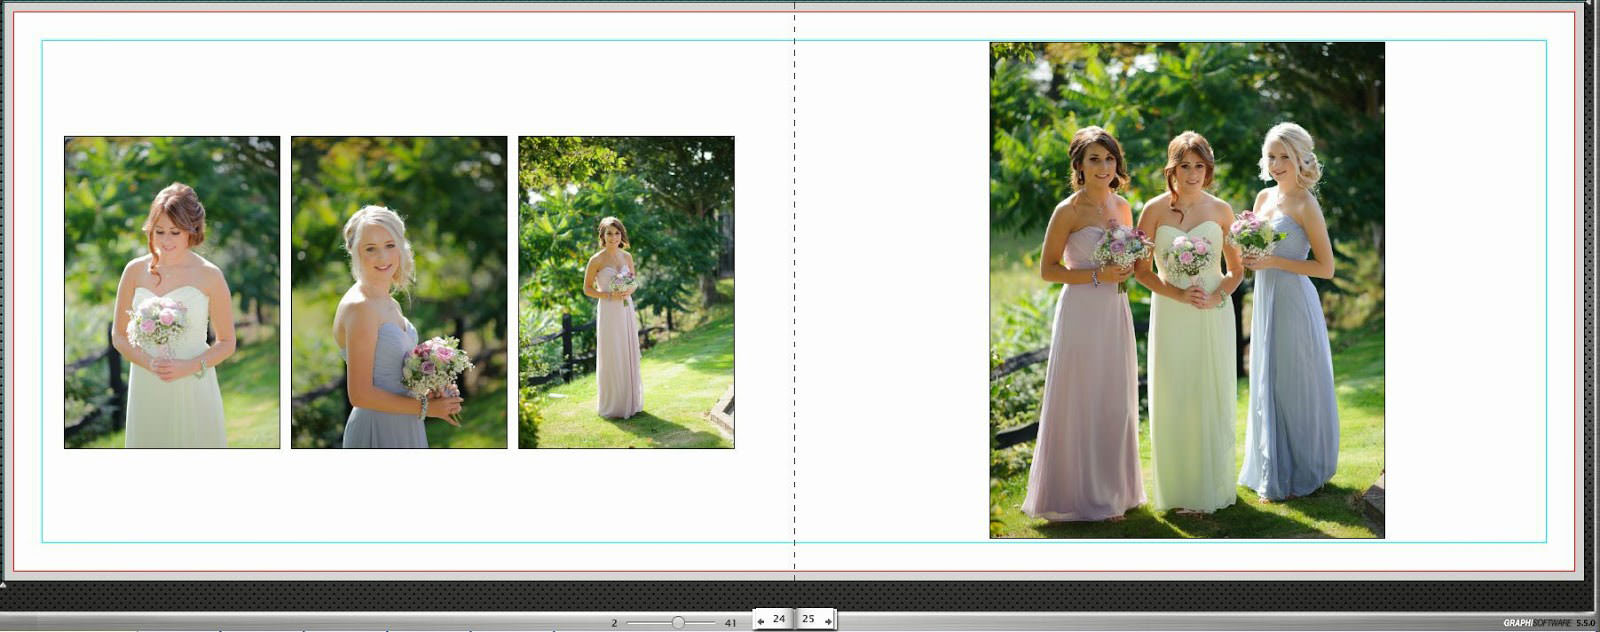 ali-gaudion-chichester-wedding-photographer-graphistudio-wedding-album-design-011